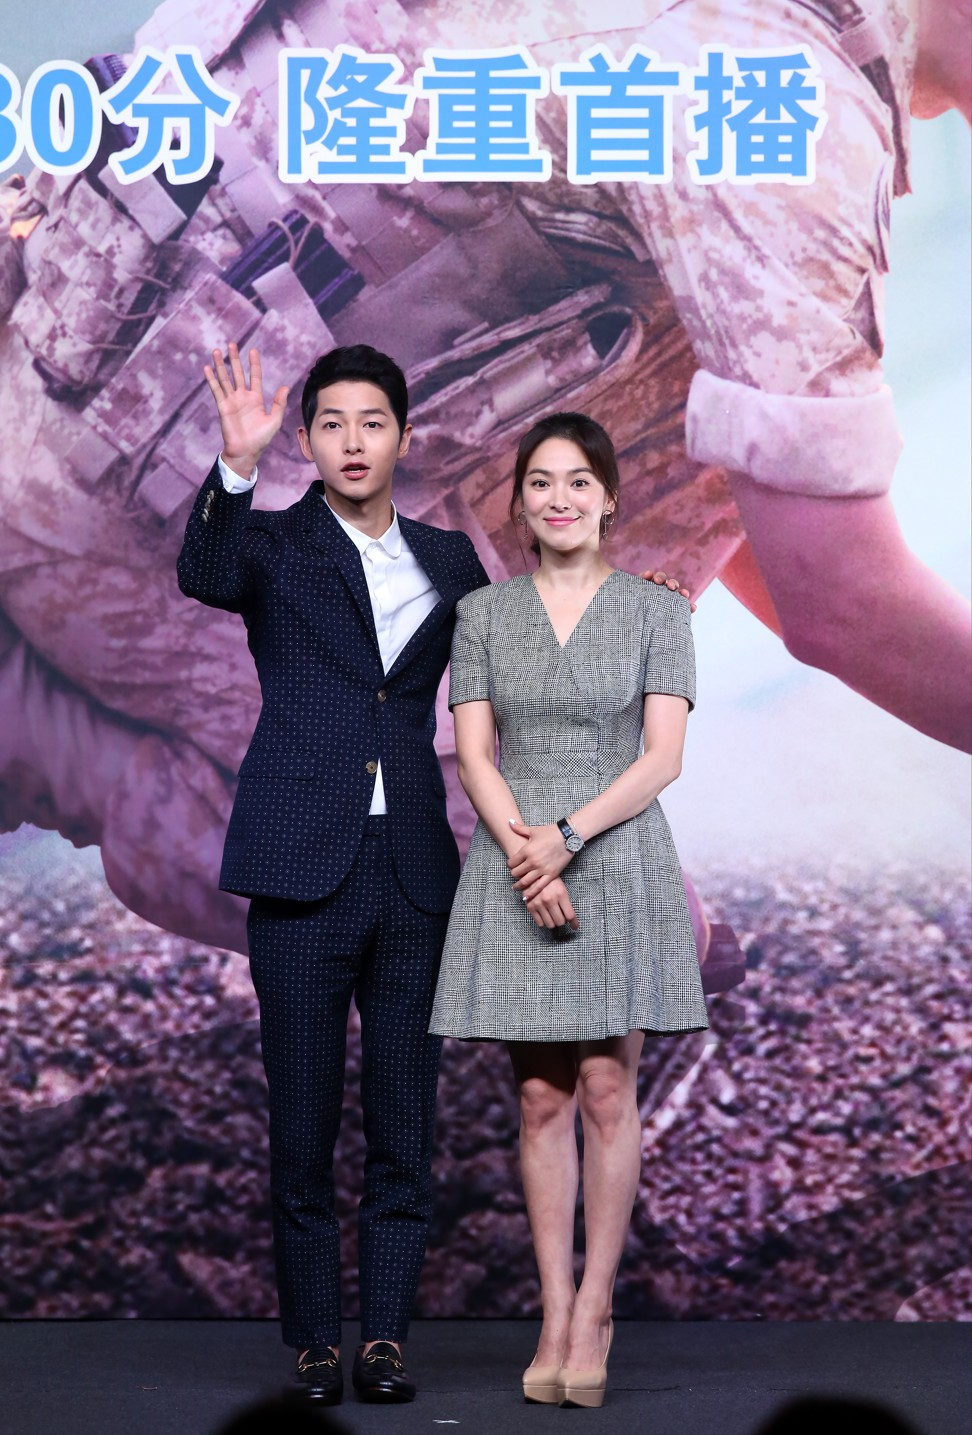 Song Joong-ki with Song Hye-kyo. Photo: SCMP Pictures